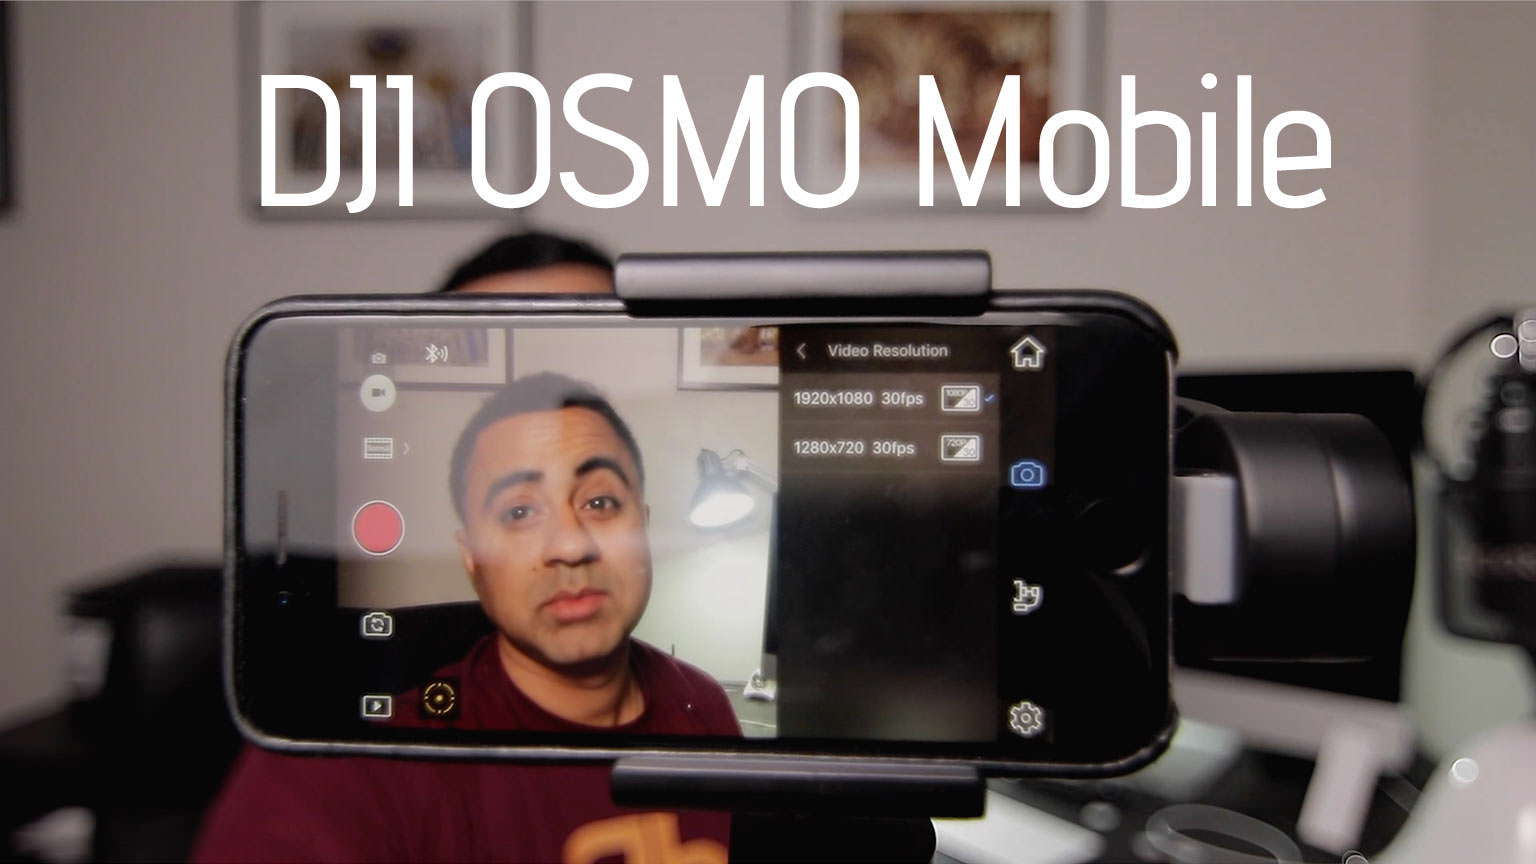 DJI Osmo Mobile – Ultimate stabliser for your Smartphone